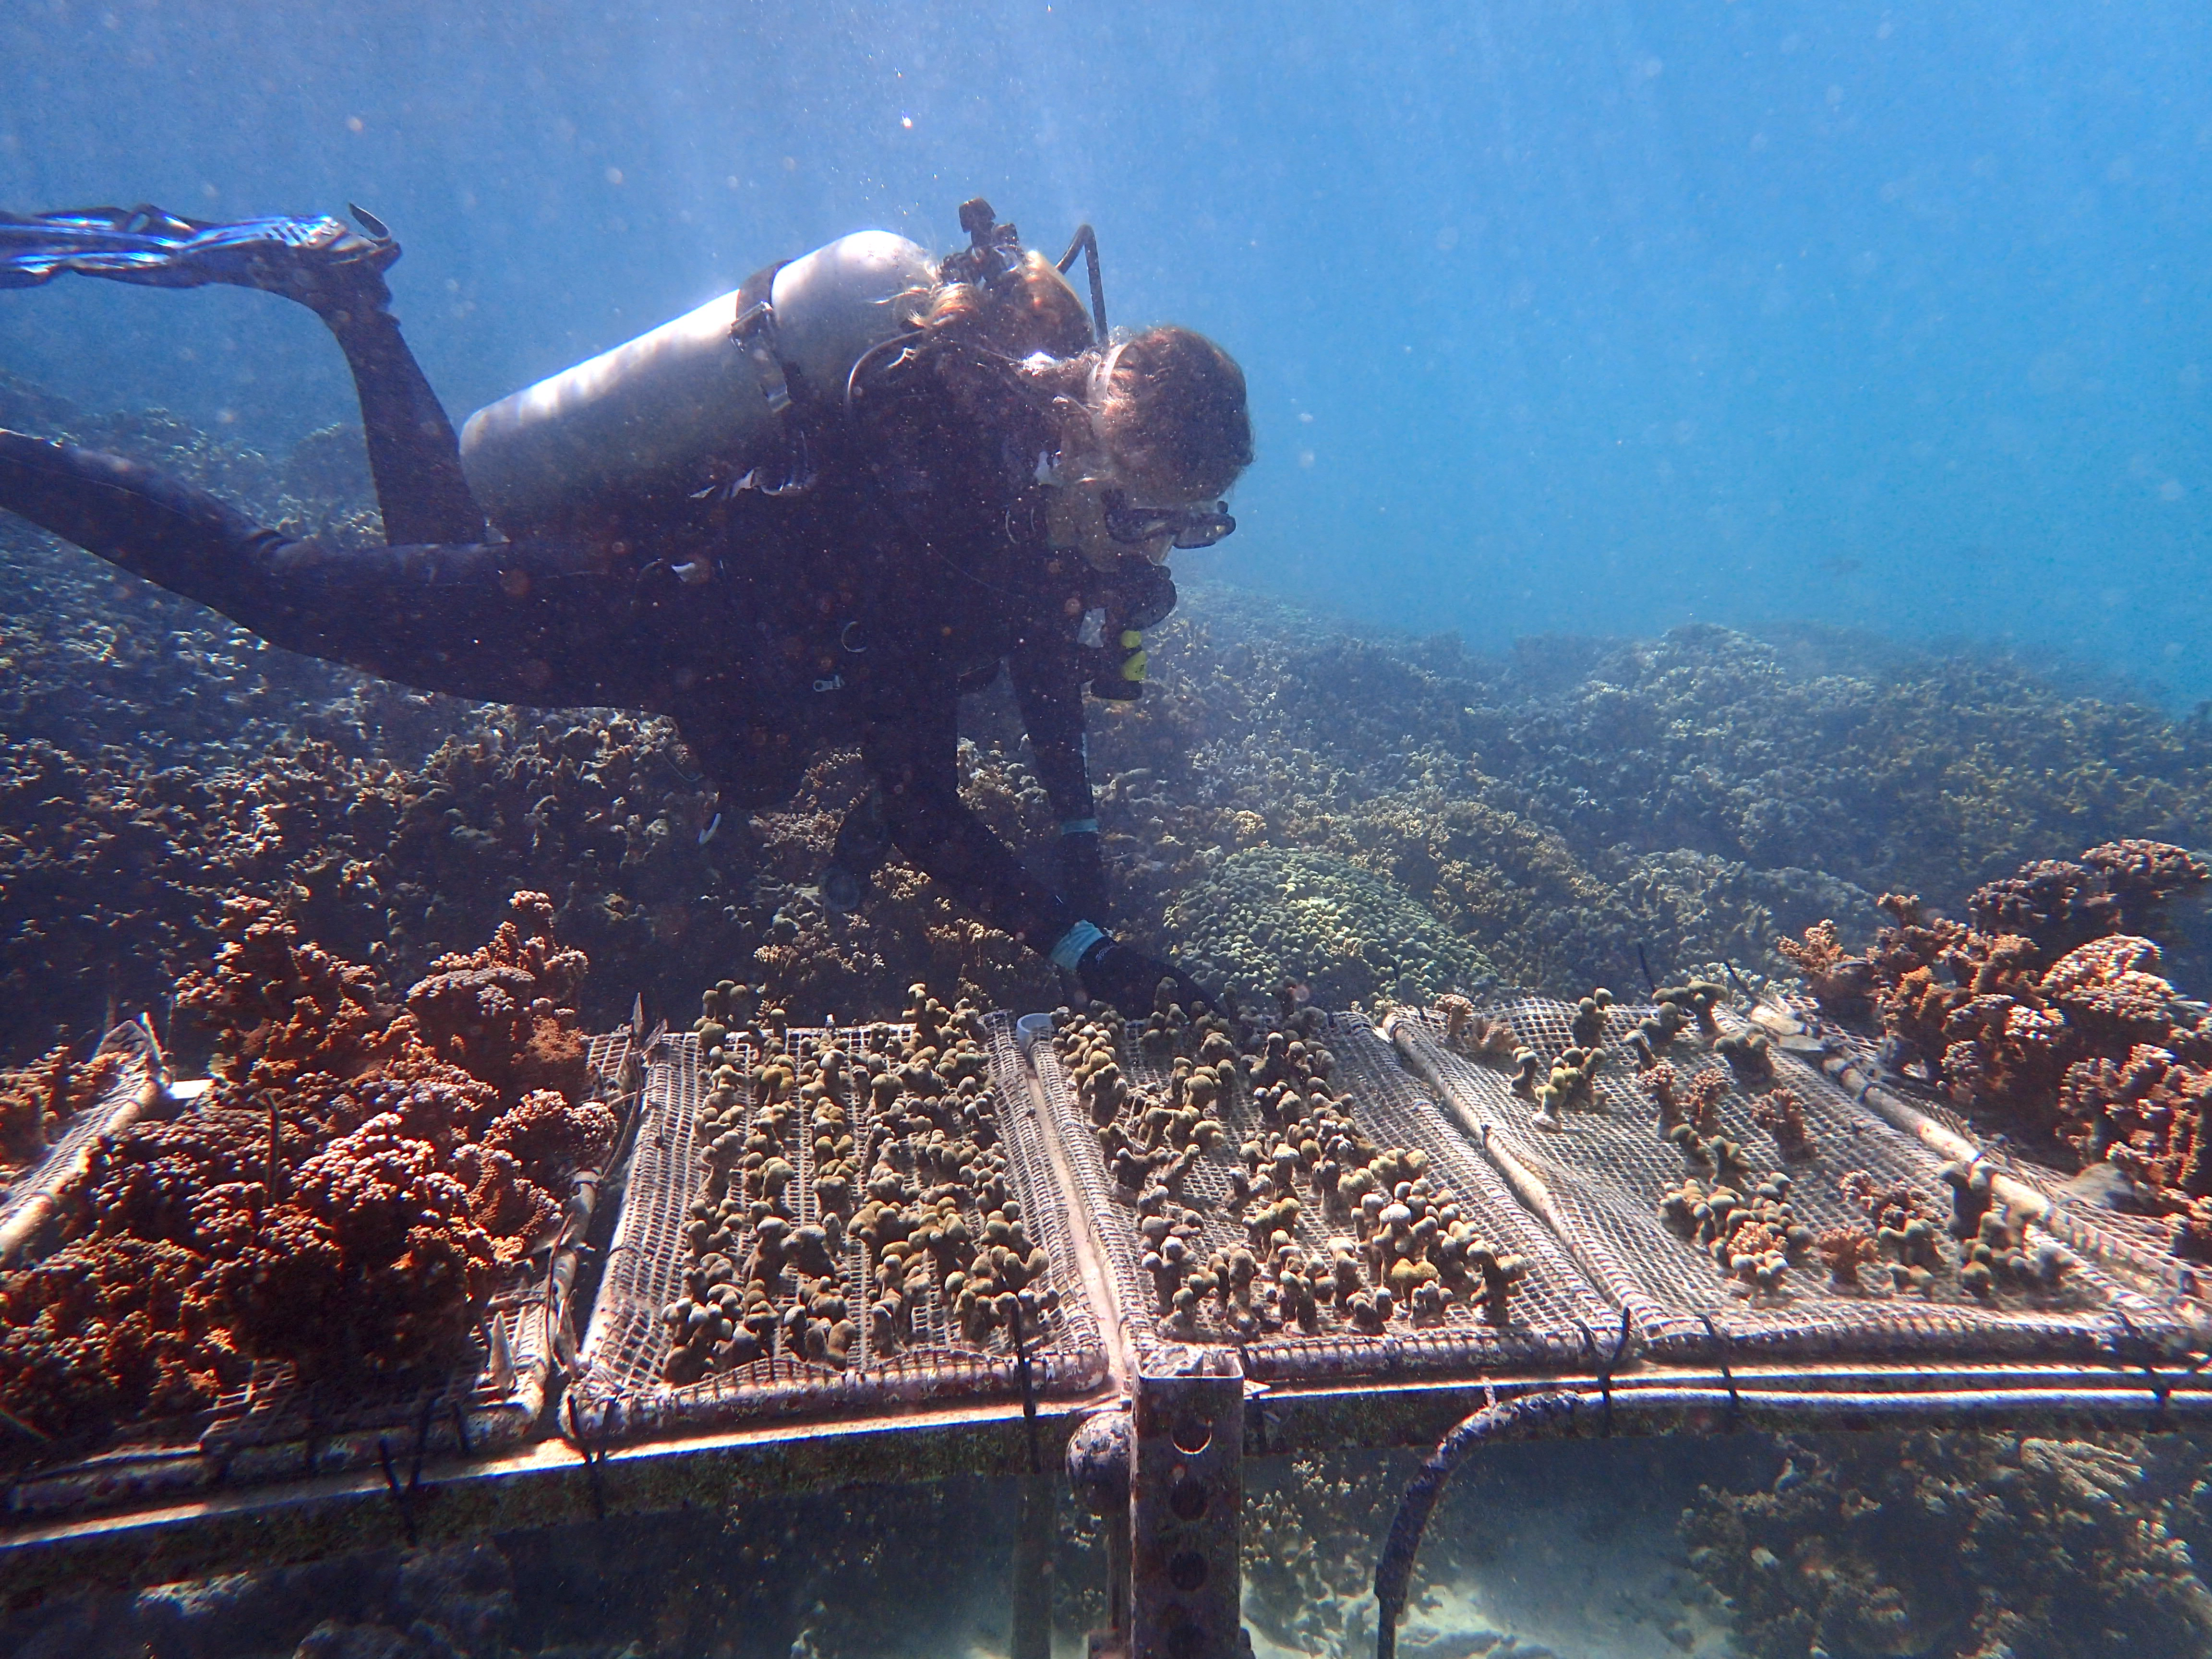 University of Pennsylvania Katie Barott carried out experiments on transplanted heat-resistant coral in Hawaii